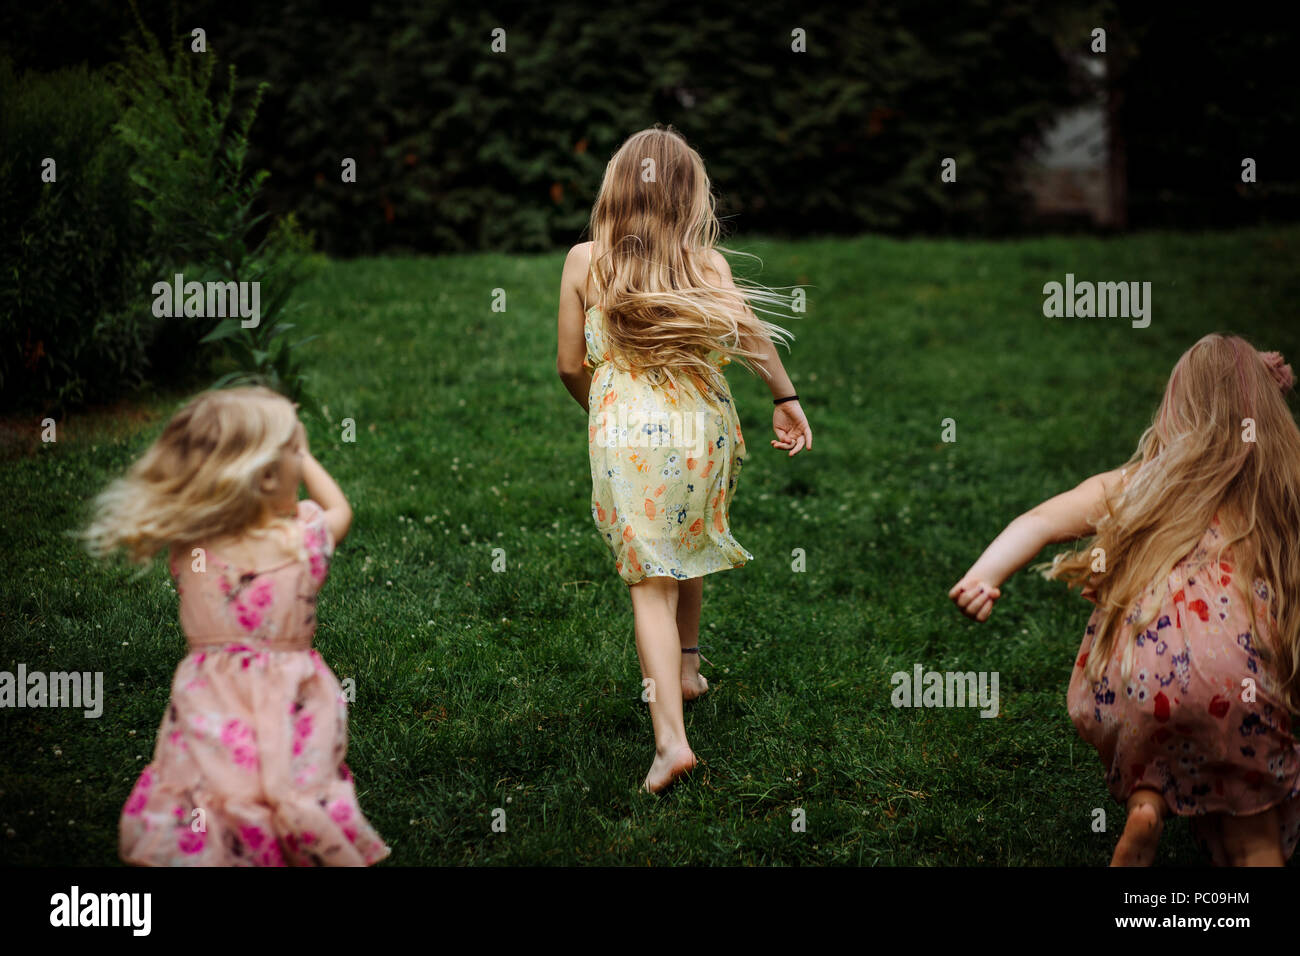 The appearance of three small girls dressed in a dress running in the park - Stock Image